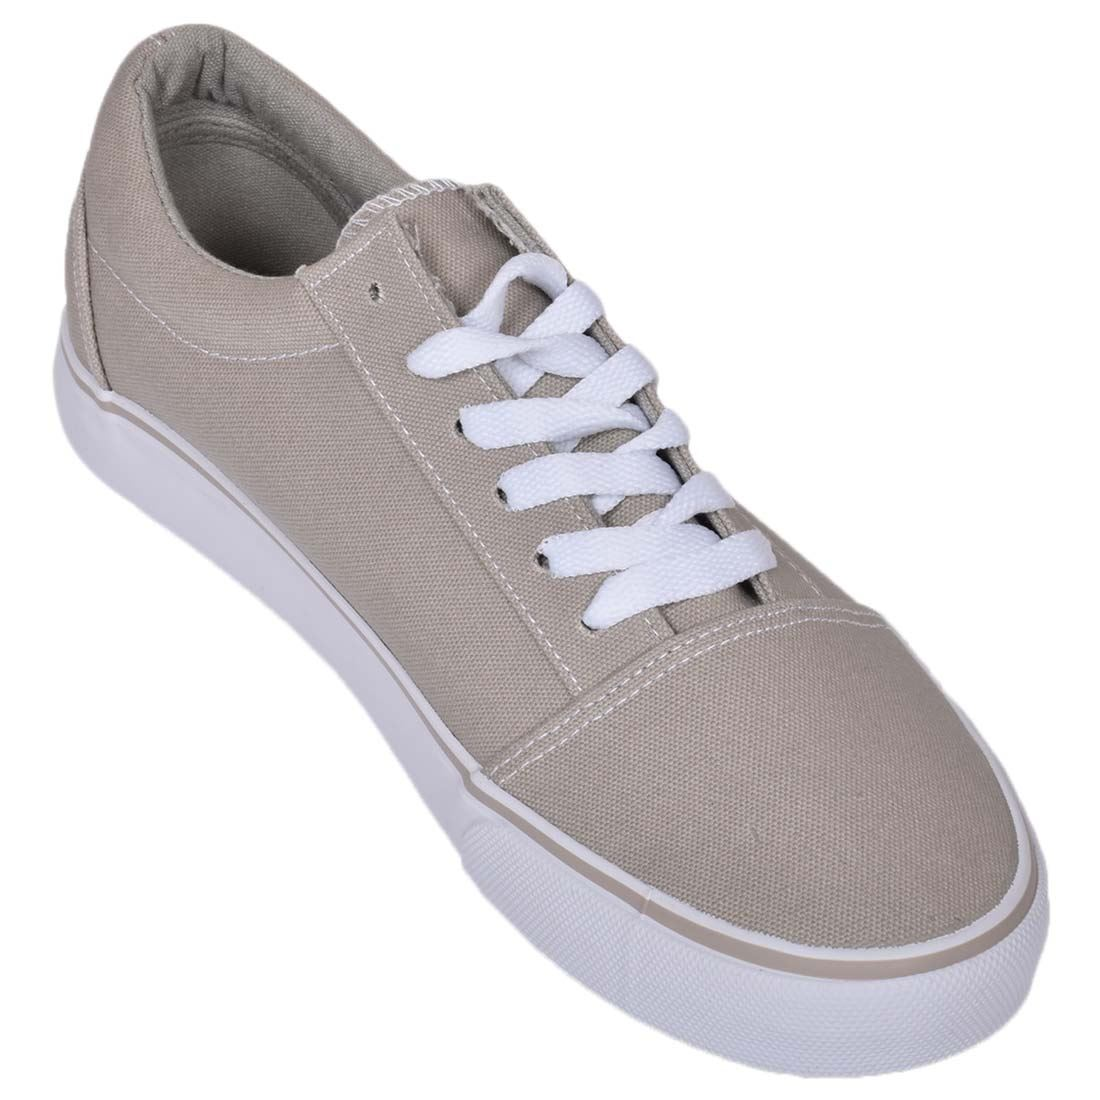 Loyalty-amp-Faith-Mens-Trainers-Sneakers-Lace-up-Running-Walking-Gym-Casual-Shoes miniatuur 103